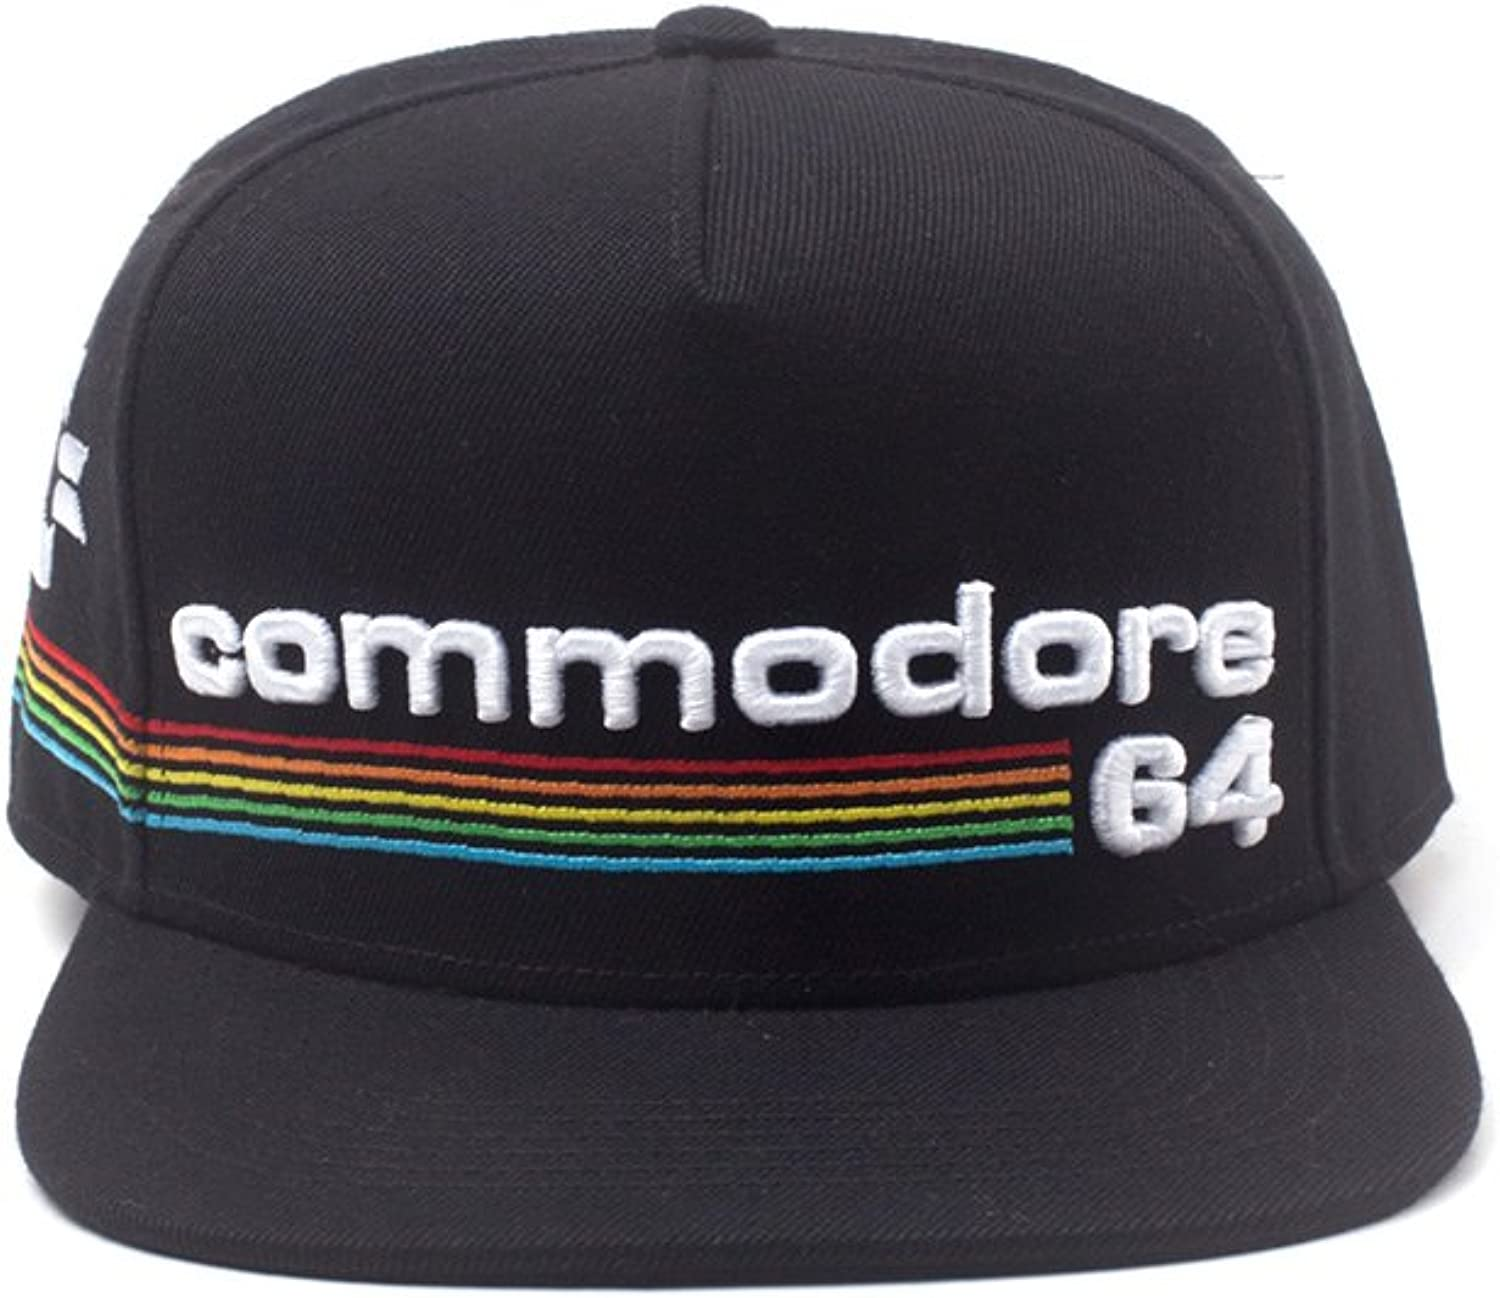 Bioworld Commodore 64 - Snapback Mütze